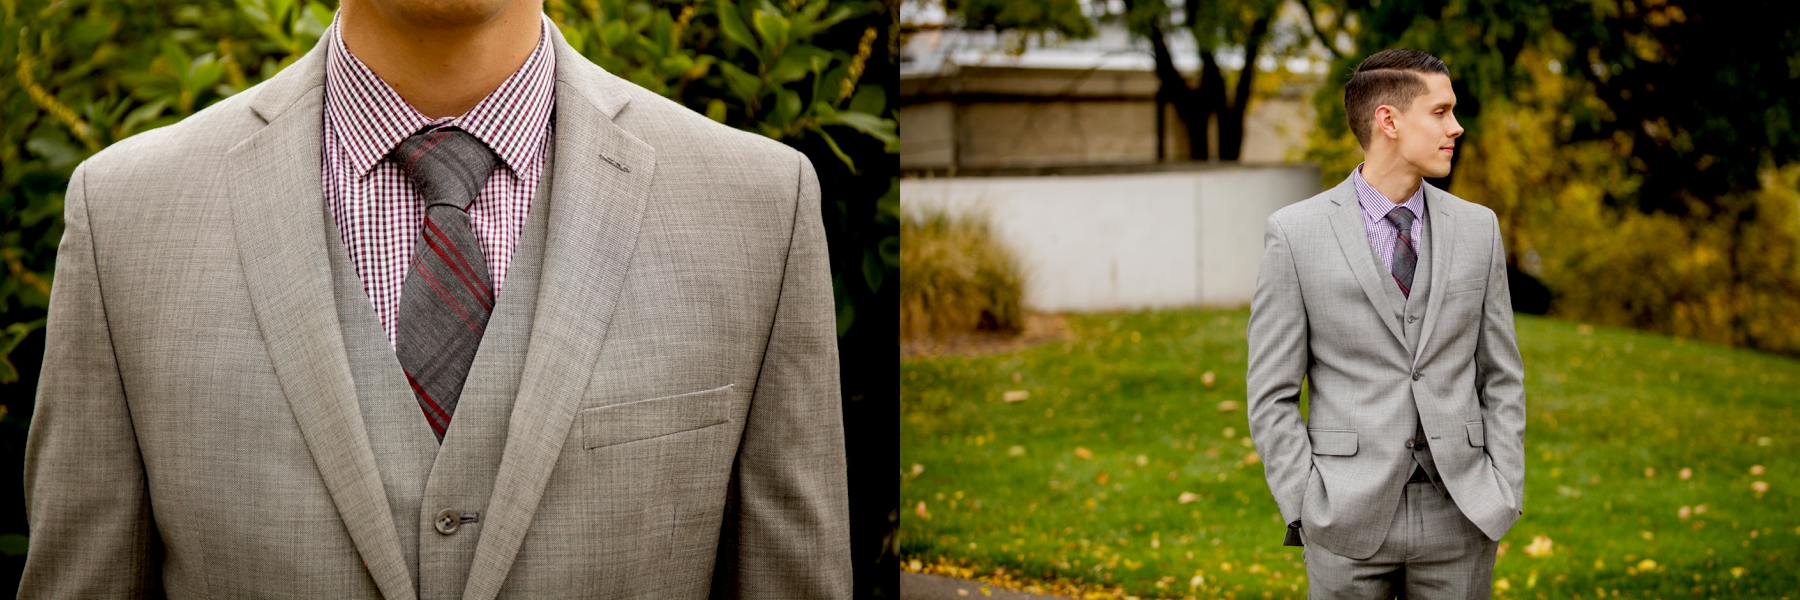 Brandon_Shafer_Photography_Kristen_Corey_Downtown_Grand_Rapids_Fall_Wedding0014.JPG